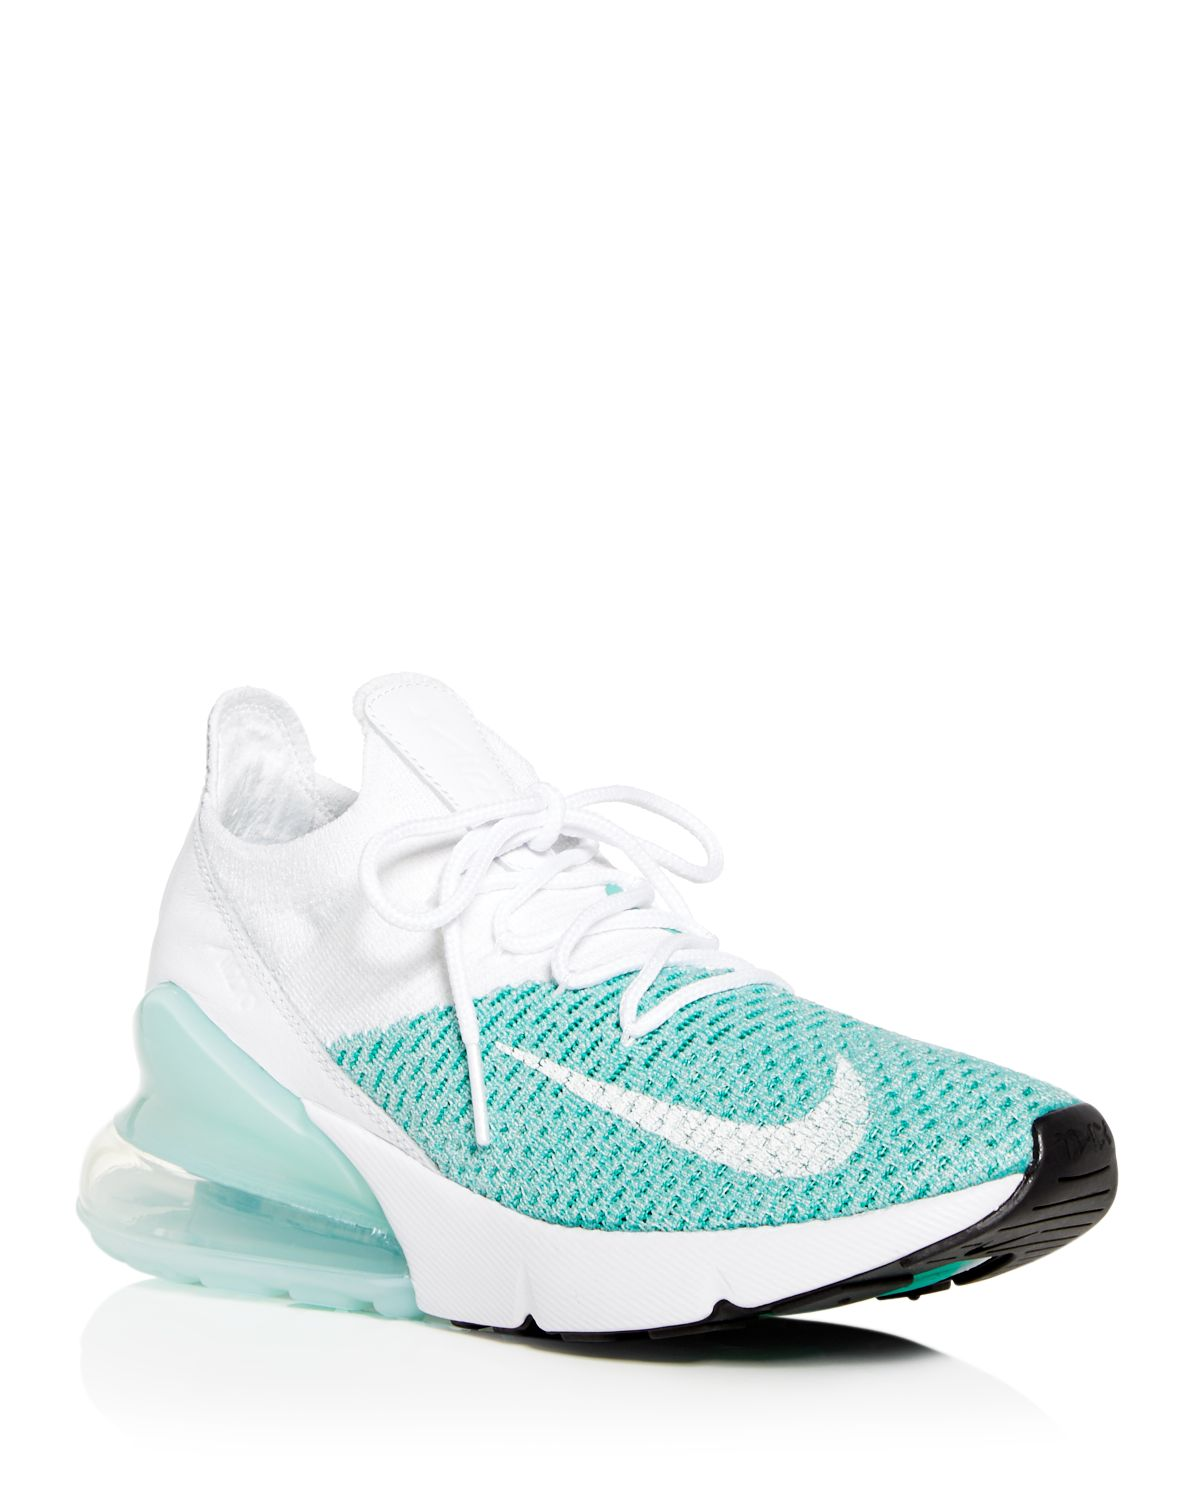 Women's Air Max 270 Flyknit Lace Up Sneakers by Nike